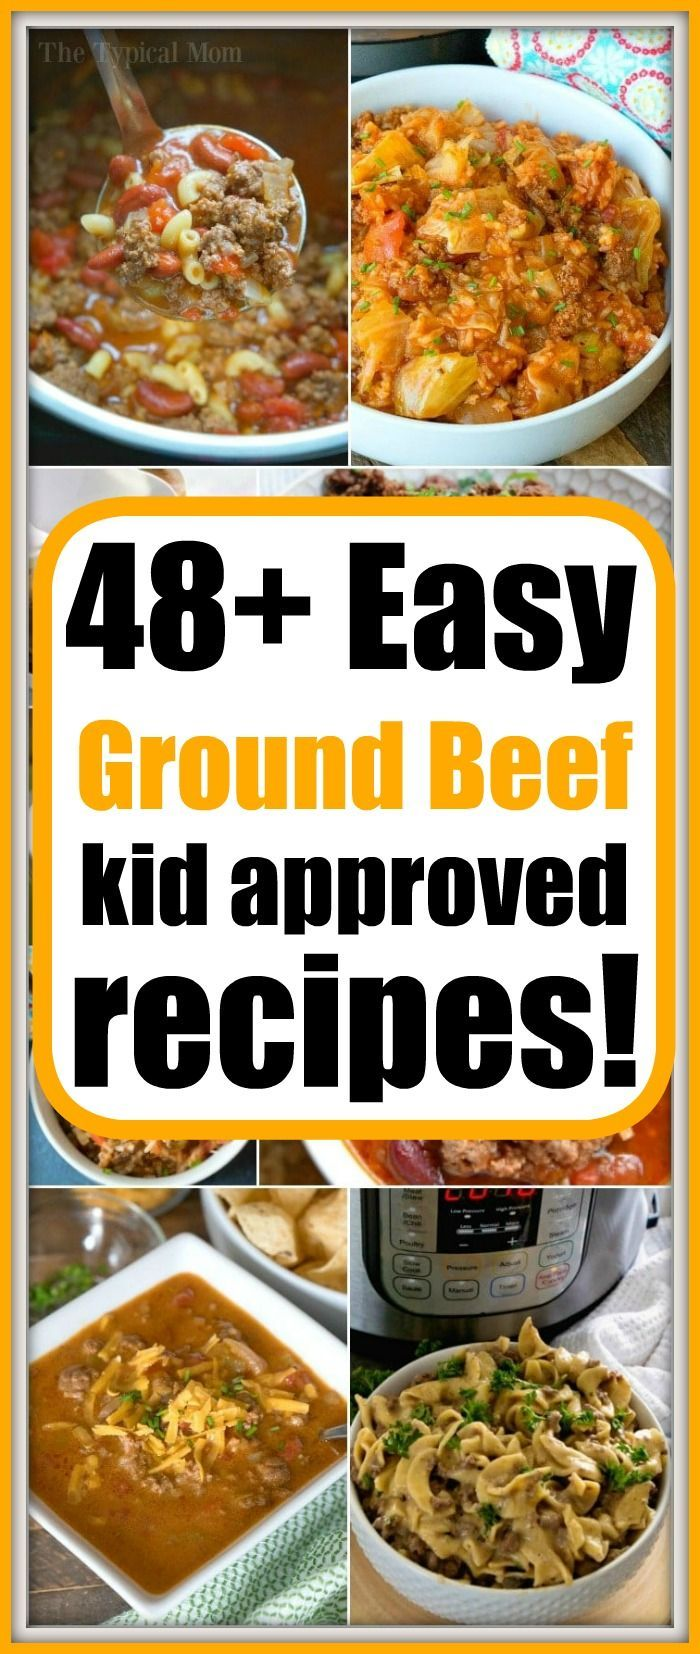 Easy Ground Beef Recipes For Families Kid Approved Simple And Cheap To Make In Your Crockpot Instan Ground Beef Recipes Easy Ground Beef Recipes Beef Recipes